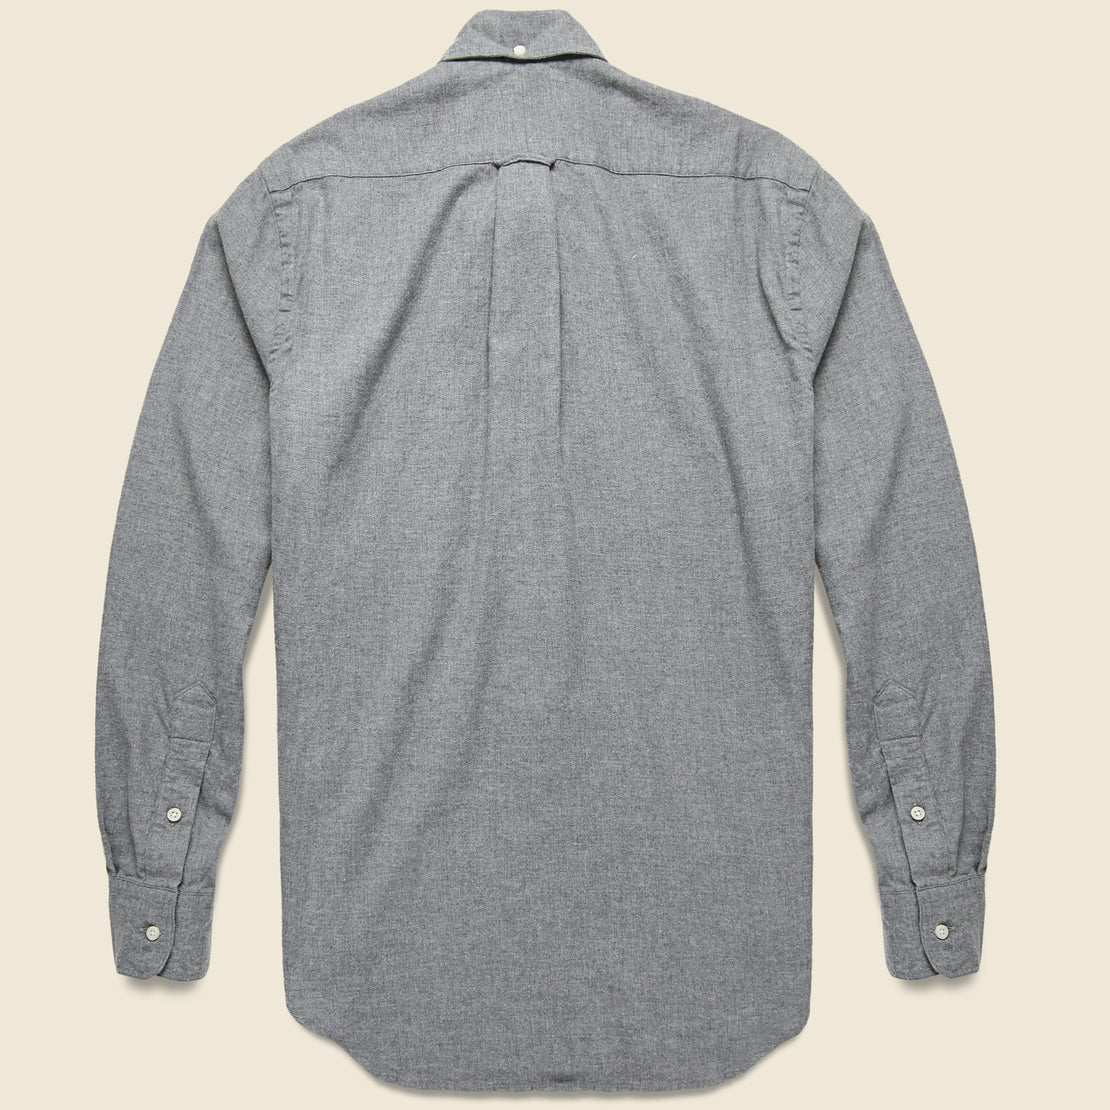 Deep in the Heart Embroidered Shirt - Grey